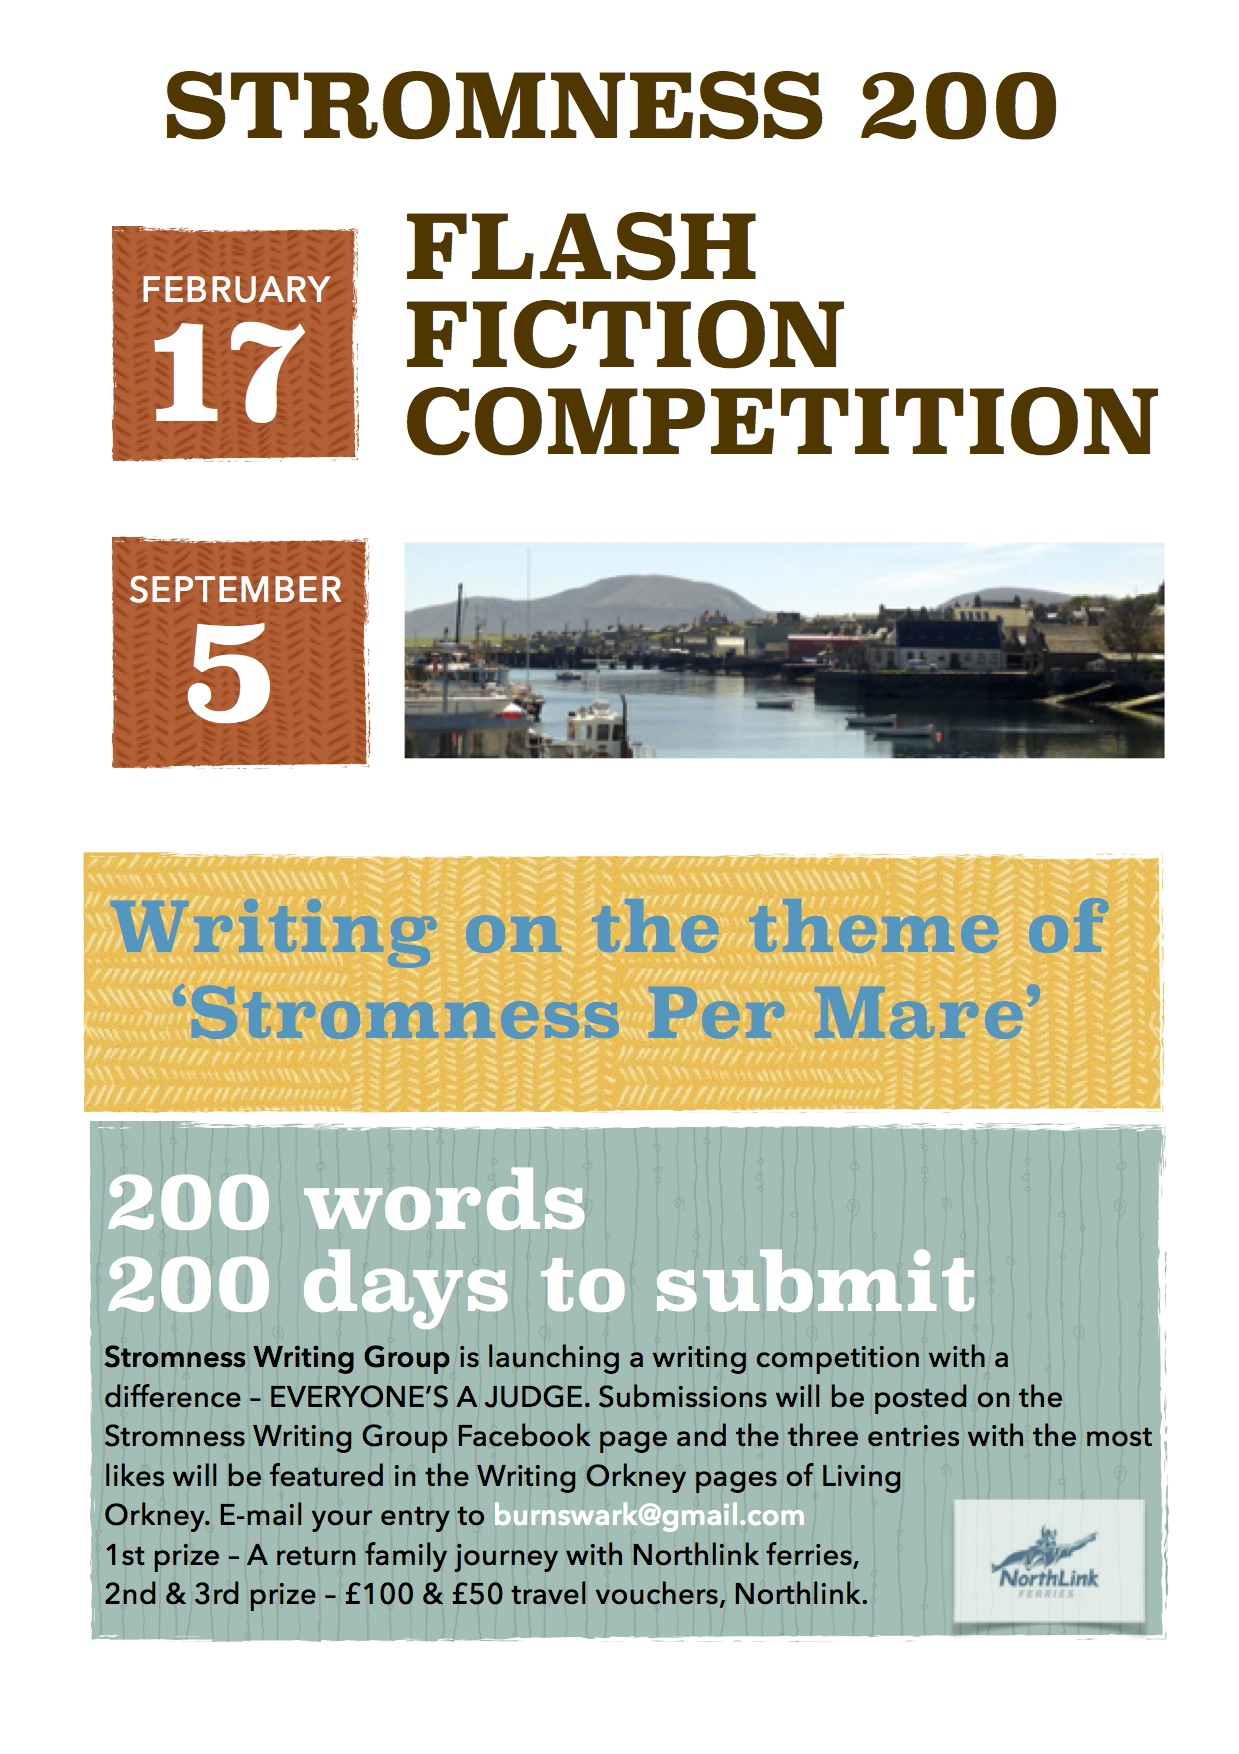 Stromness 200, writing group competition, 200 words, flash fiction, Gabrielle Barnby